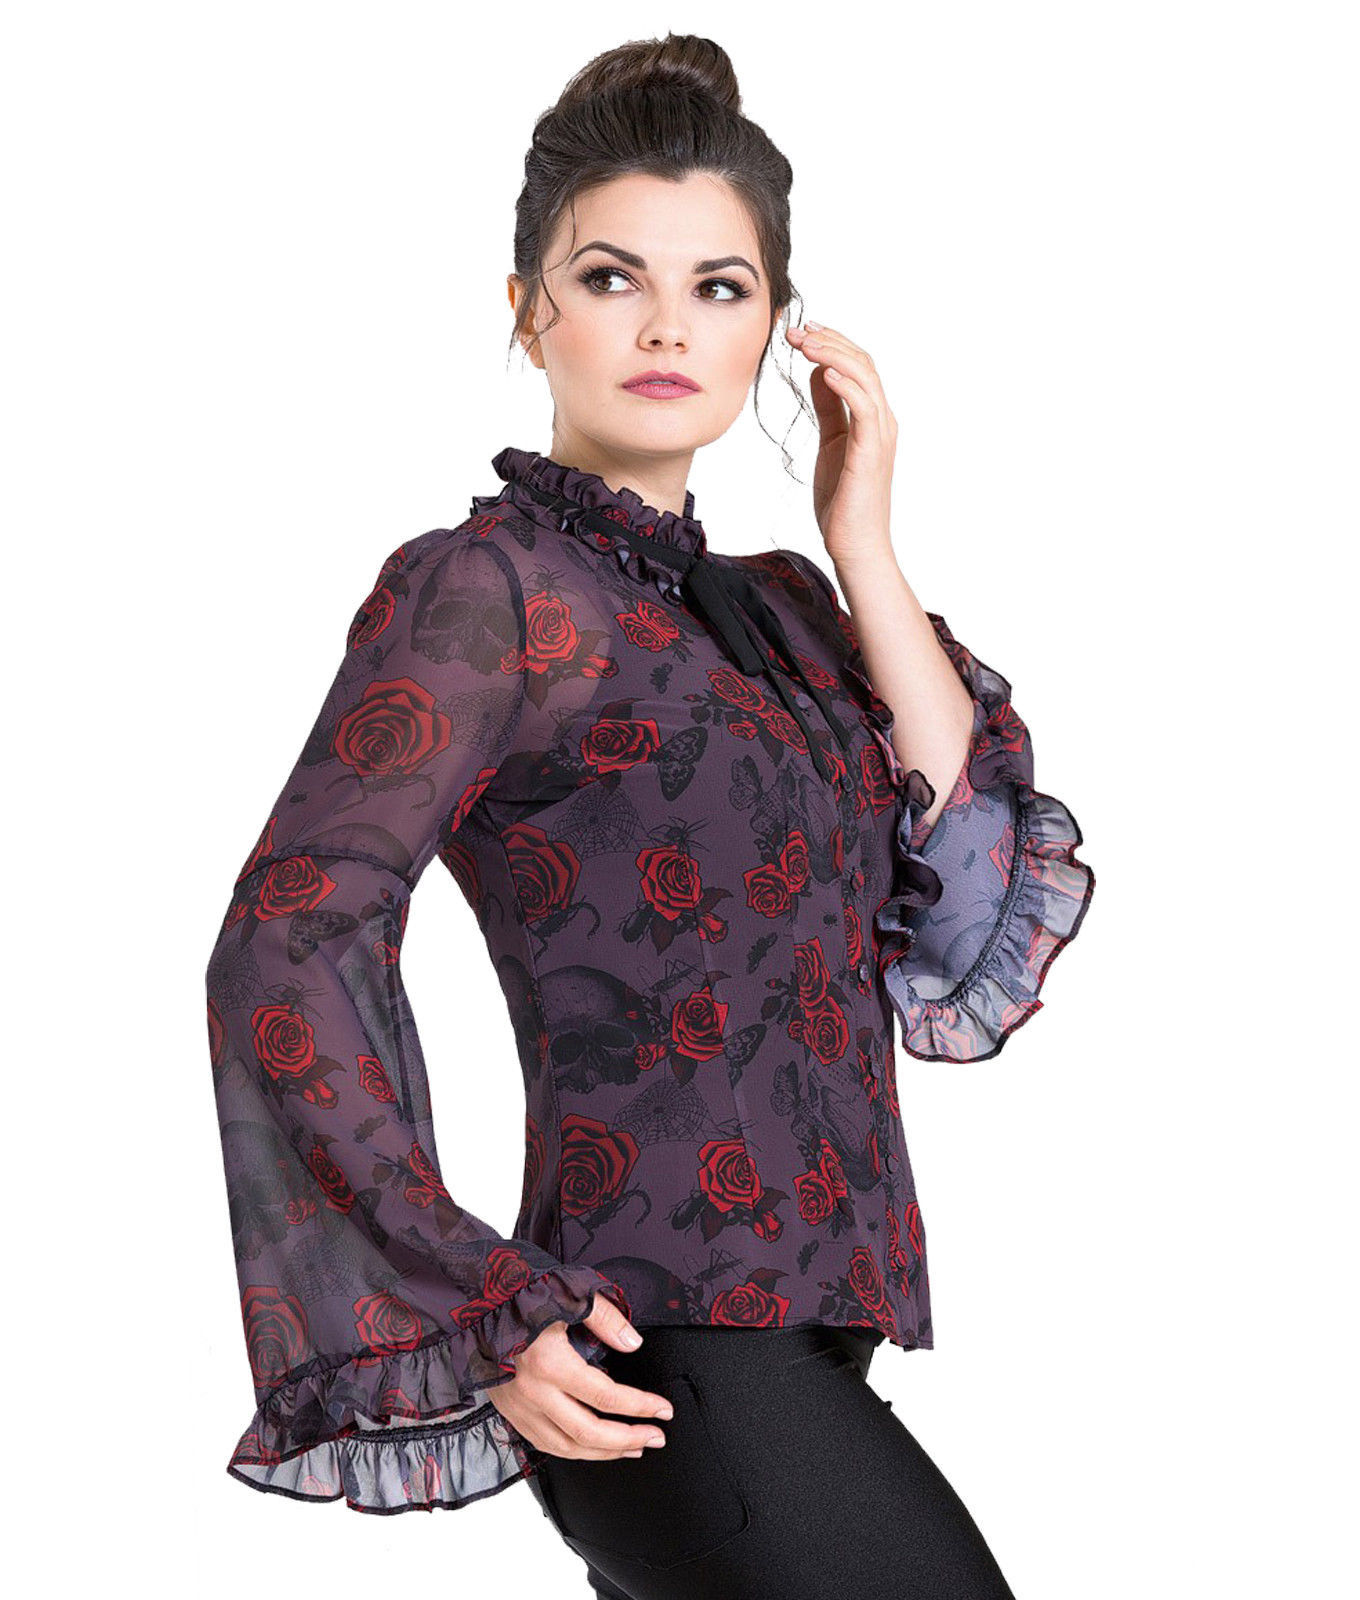 Hell-Bunny-Chiffon-Shirt-Top-Gothic-Floaty-BUGS-amp-ROSES-Purple-Blouse-All-Sizes thumbnail 7